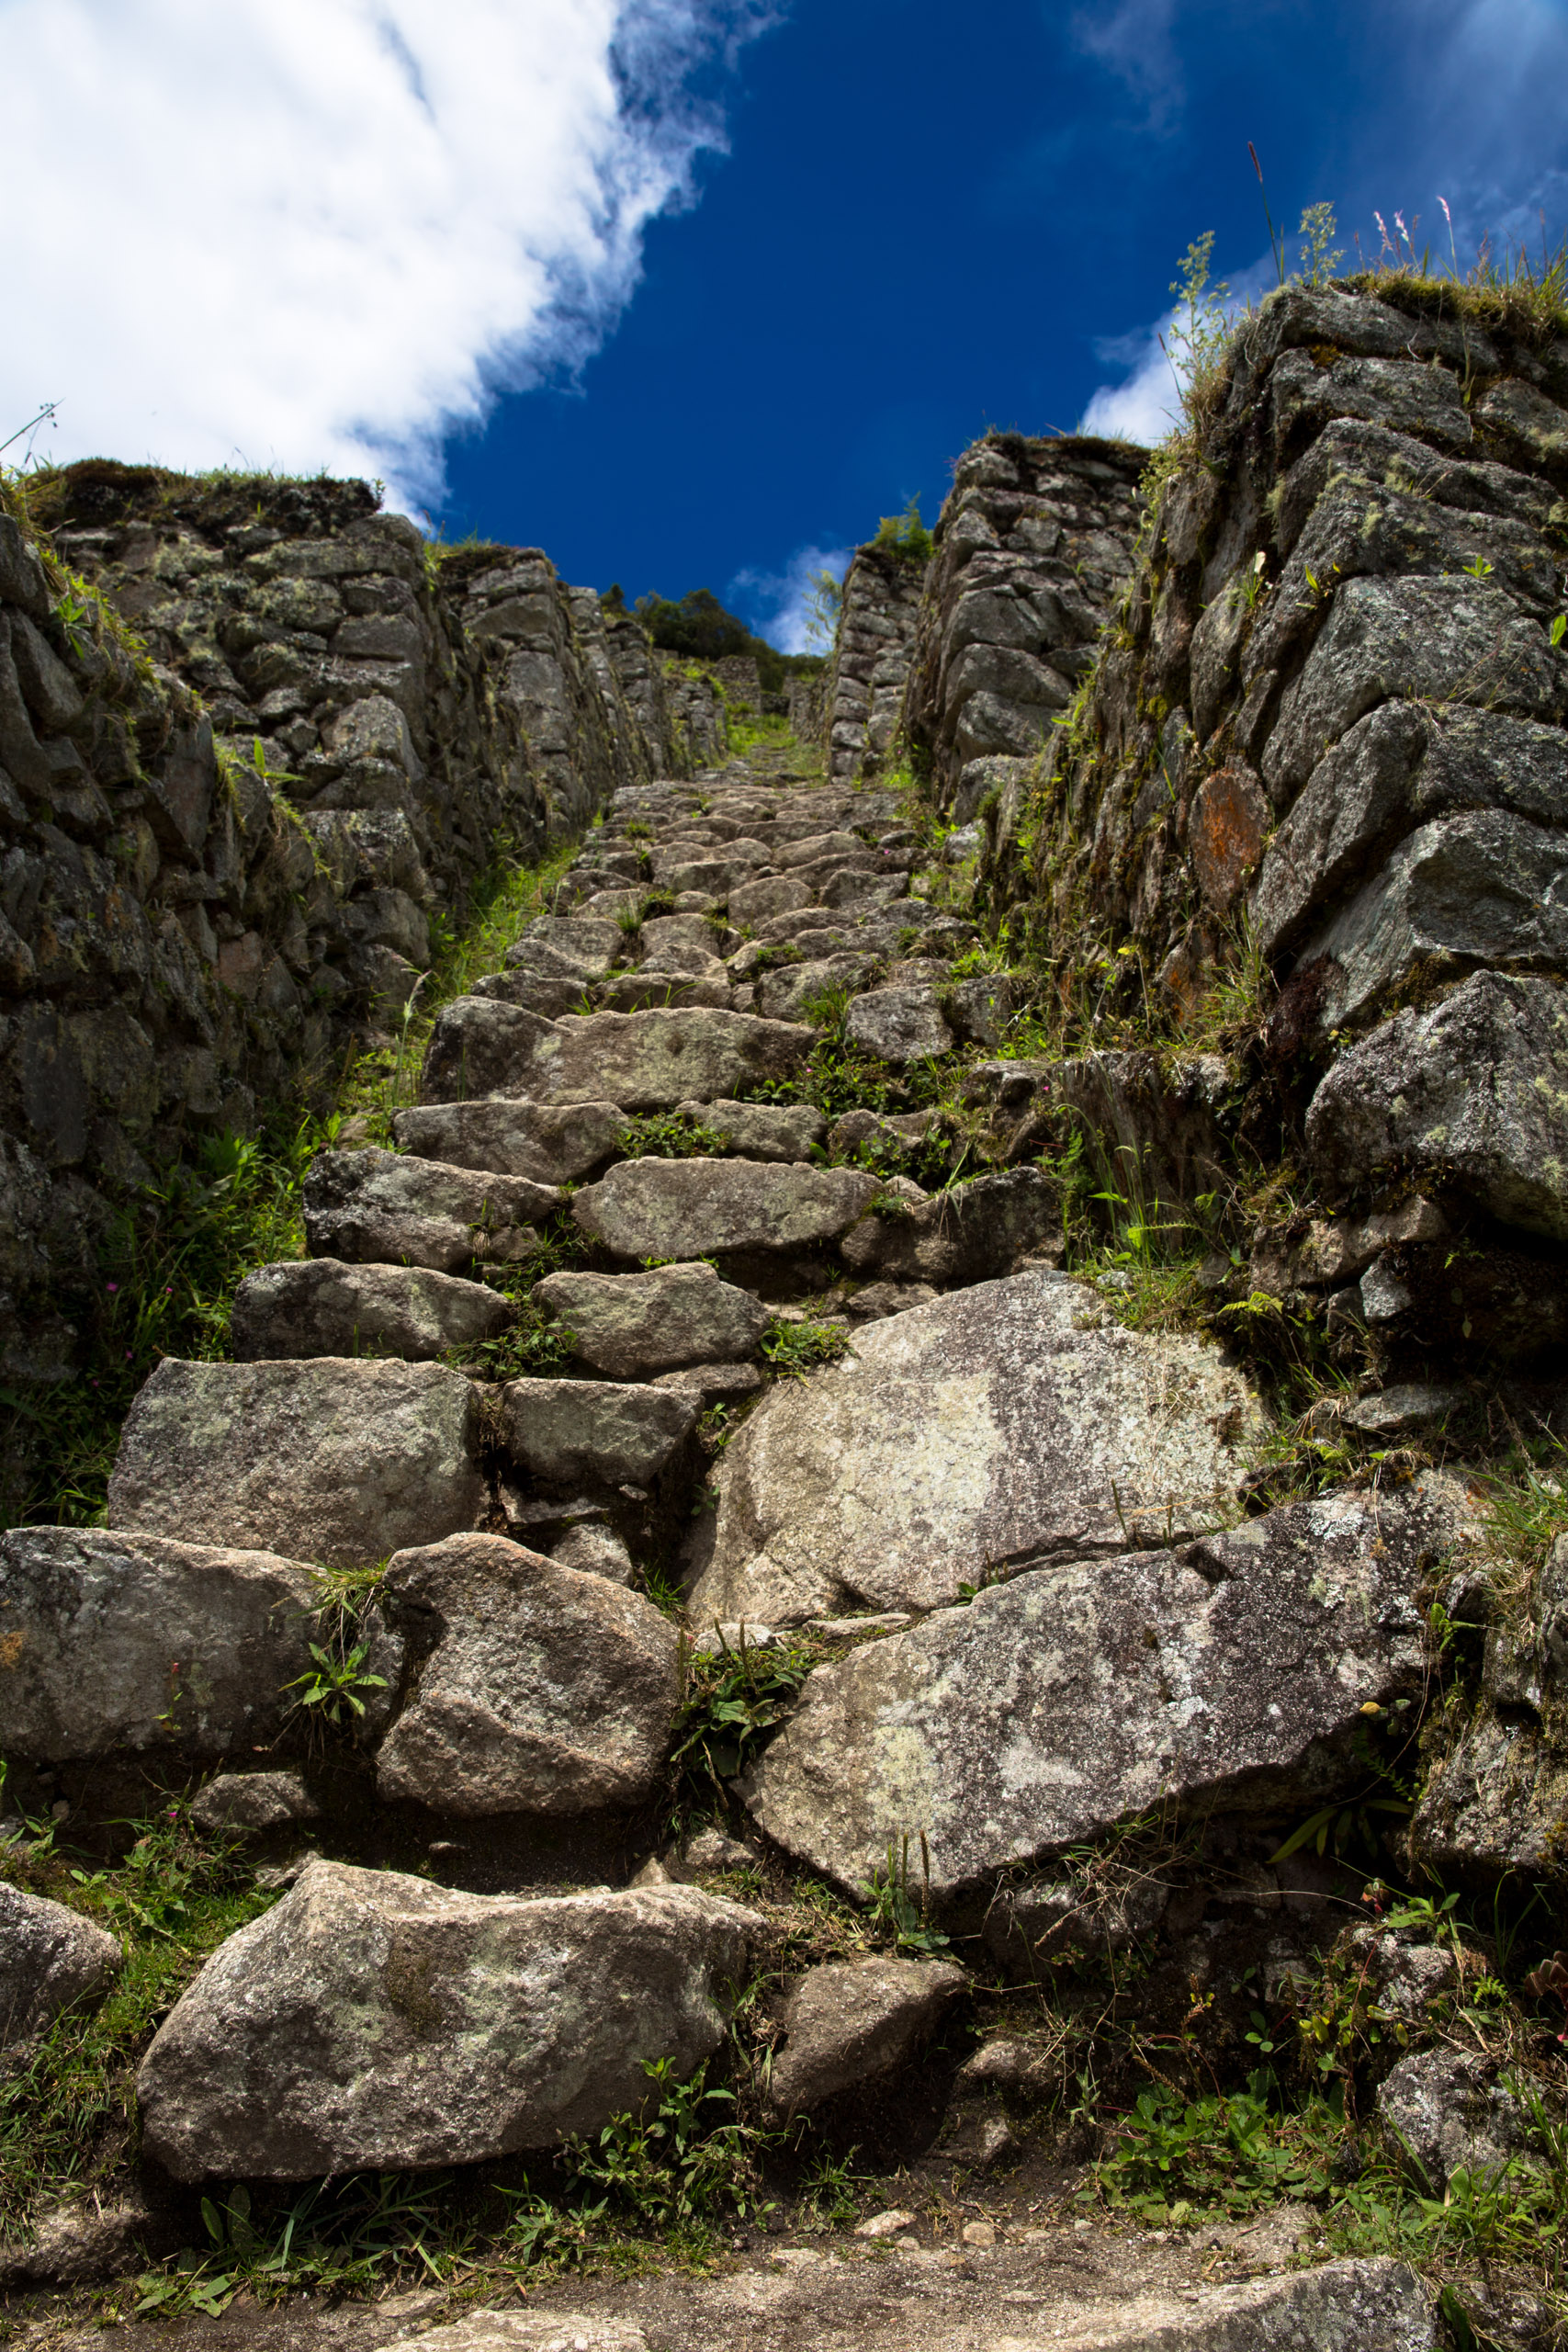 The Incas liked stairs